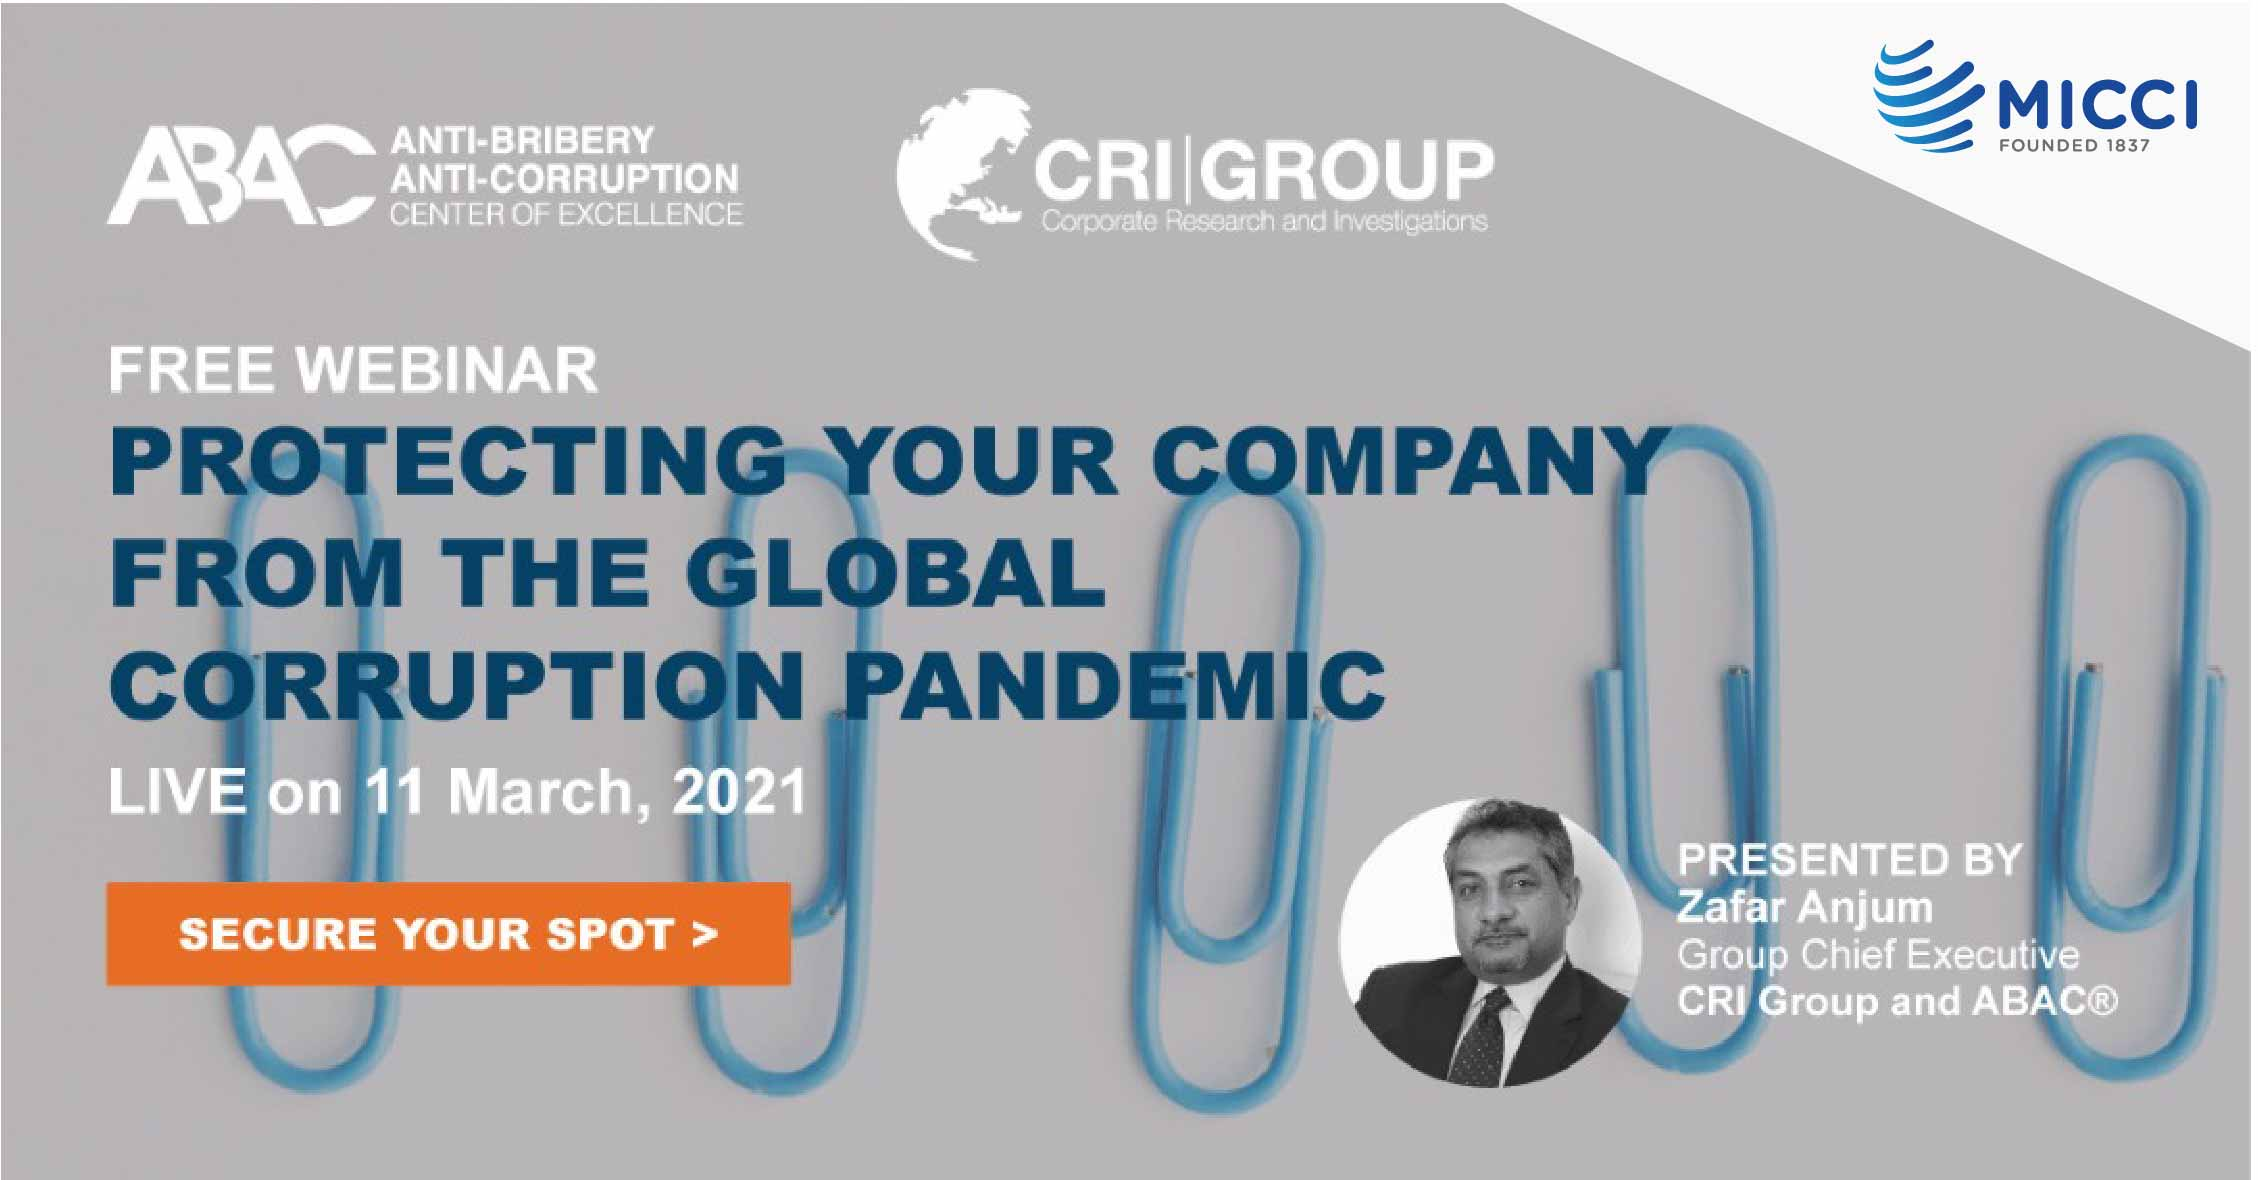 Free Webinar - Protecting Your Company From The Global Corruption Pandemic